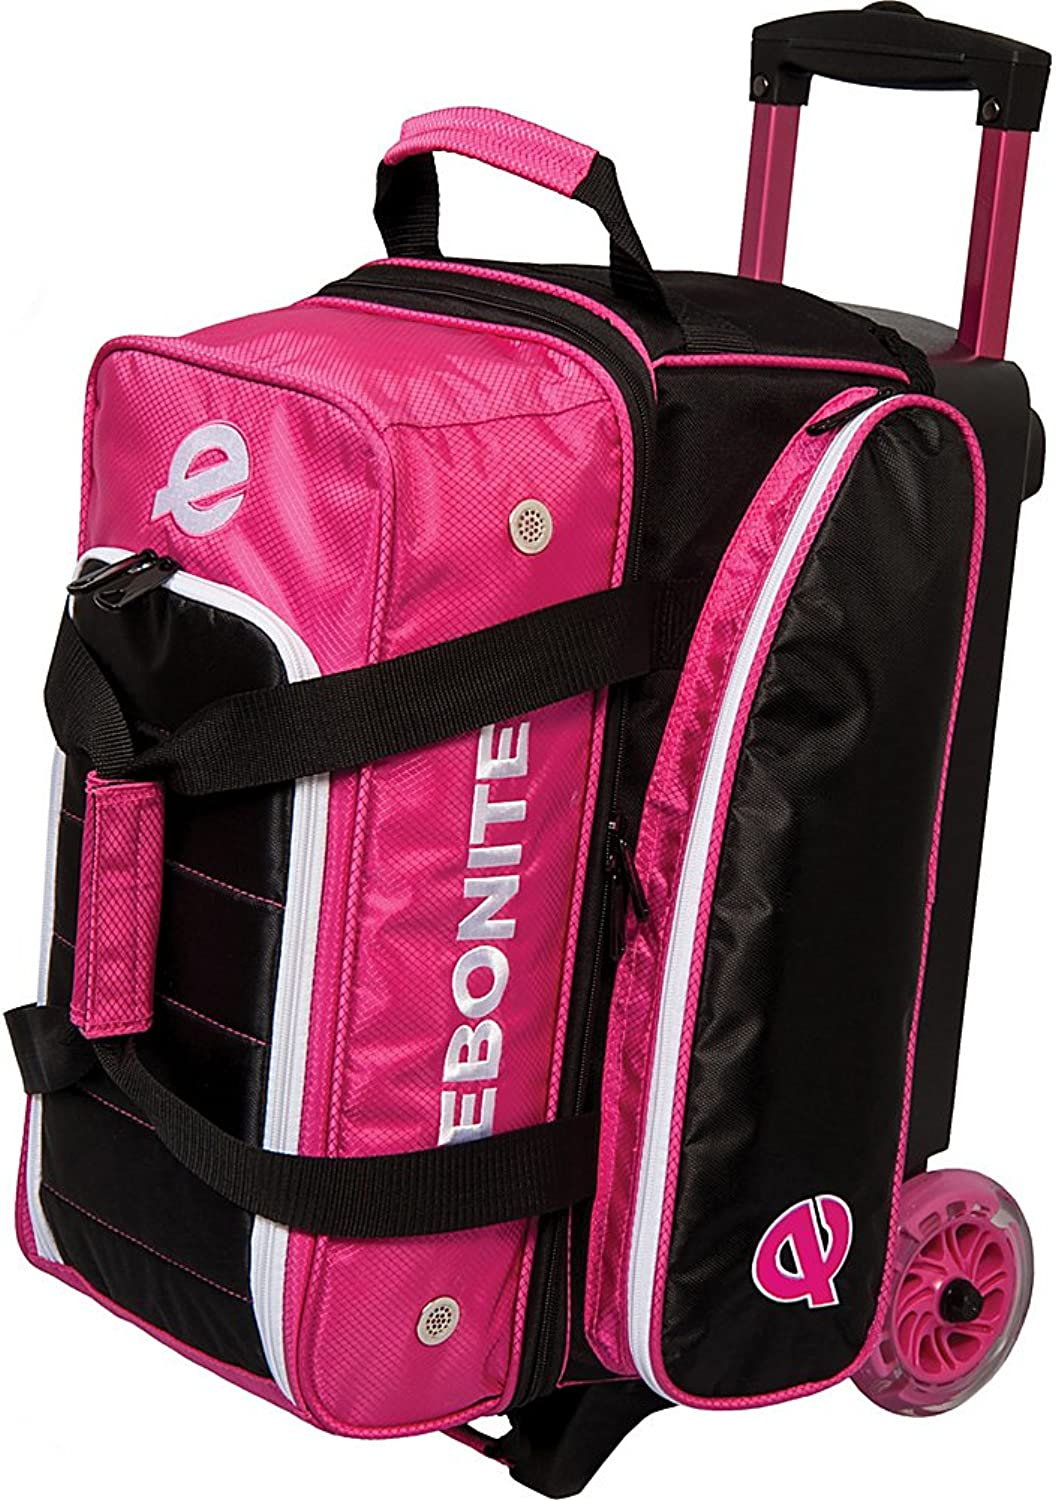 (Pink)  Ebonite Eclipse Double Roller Bowling Bag